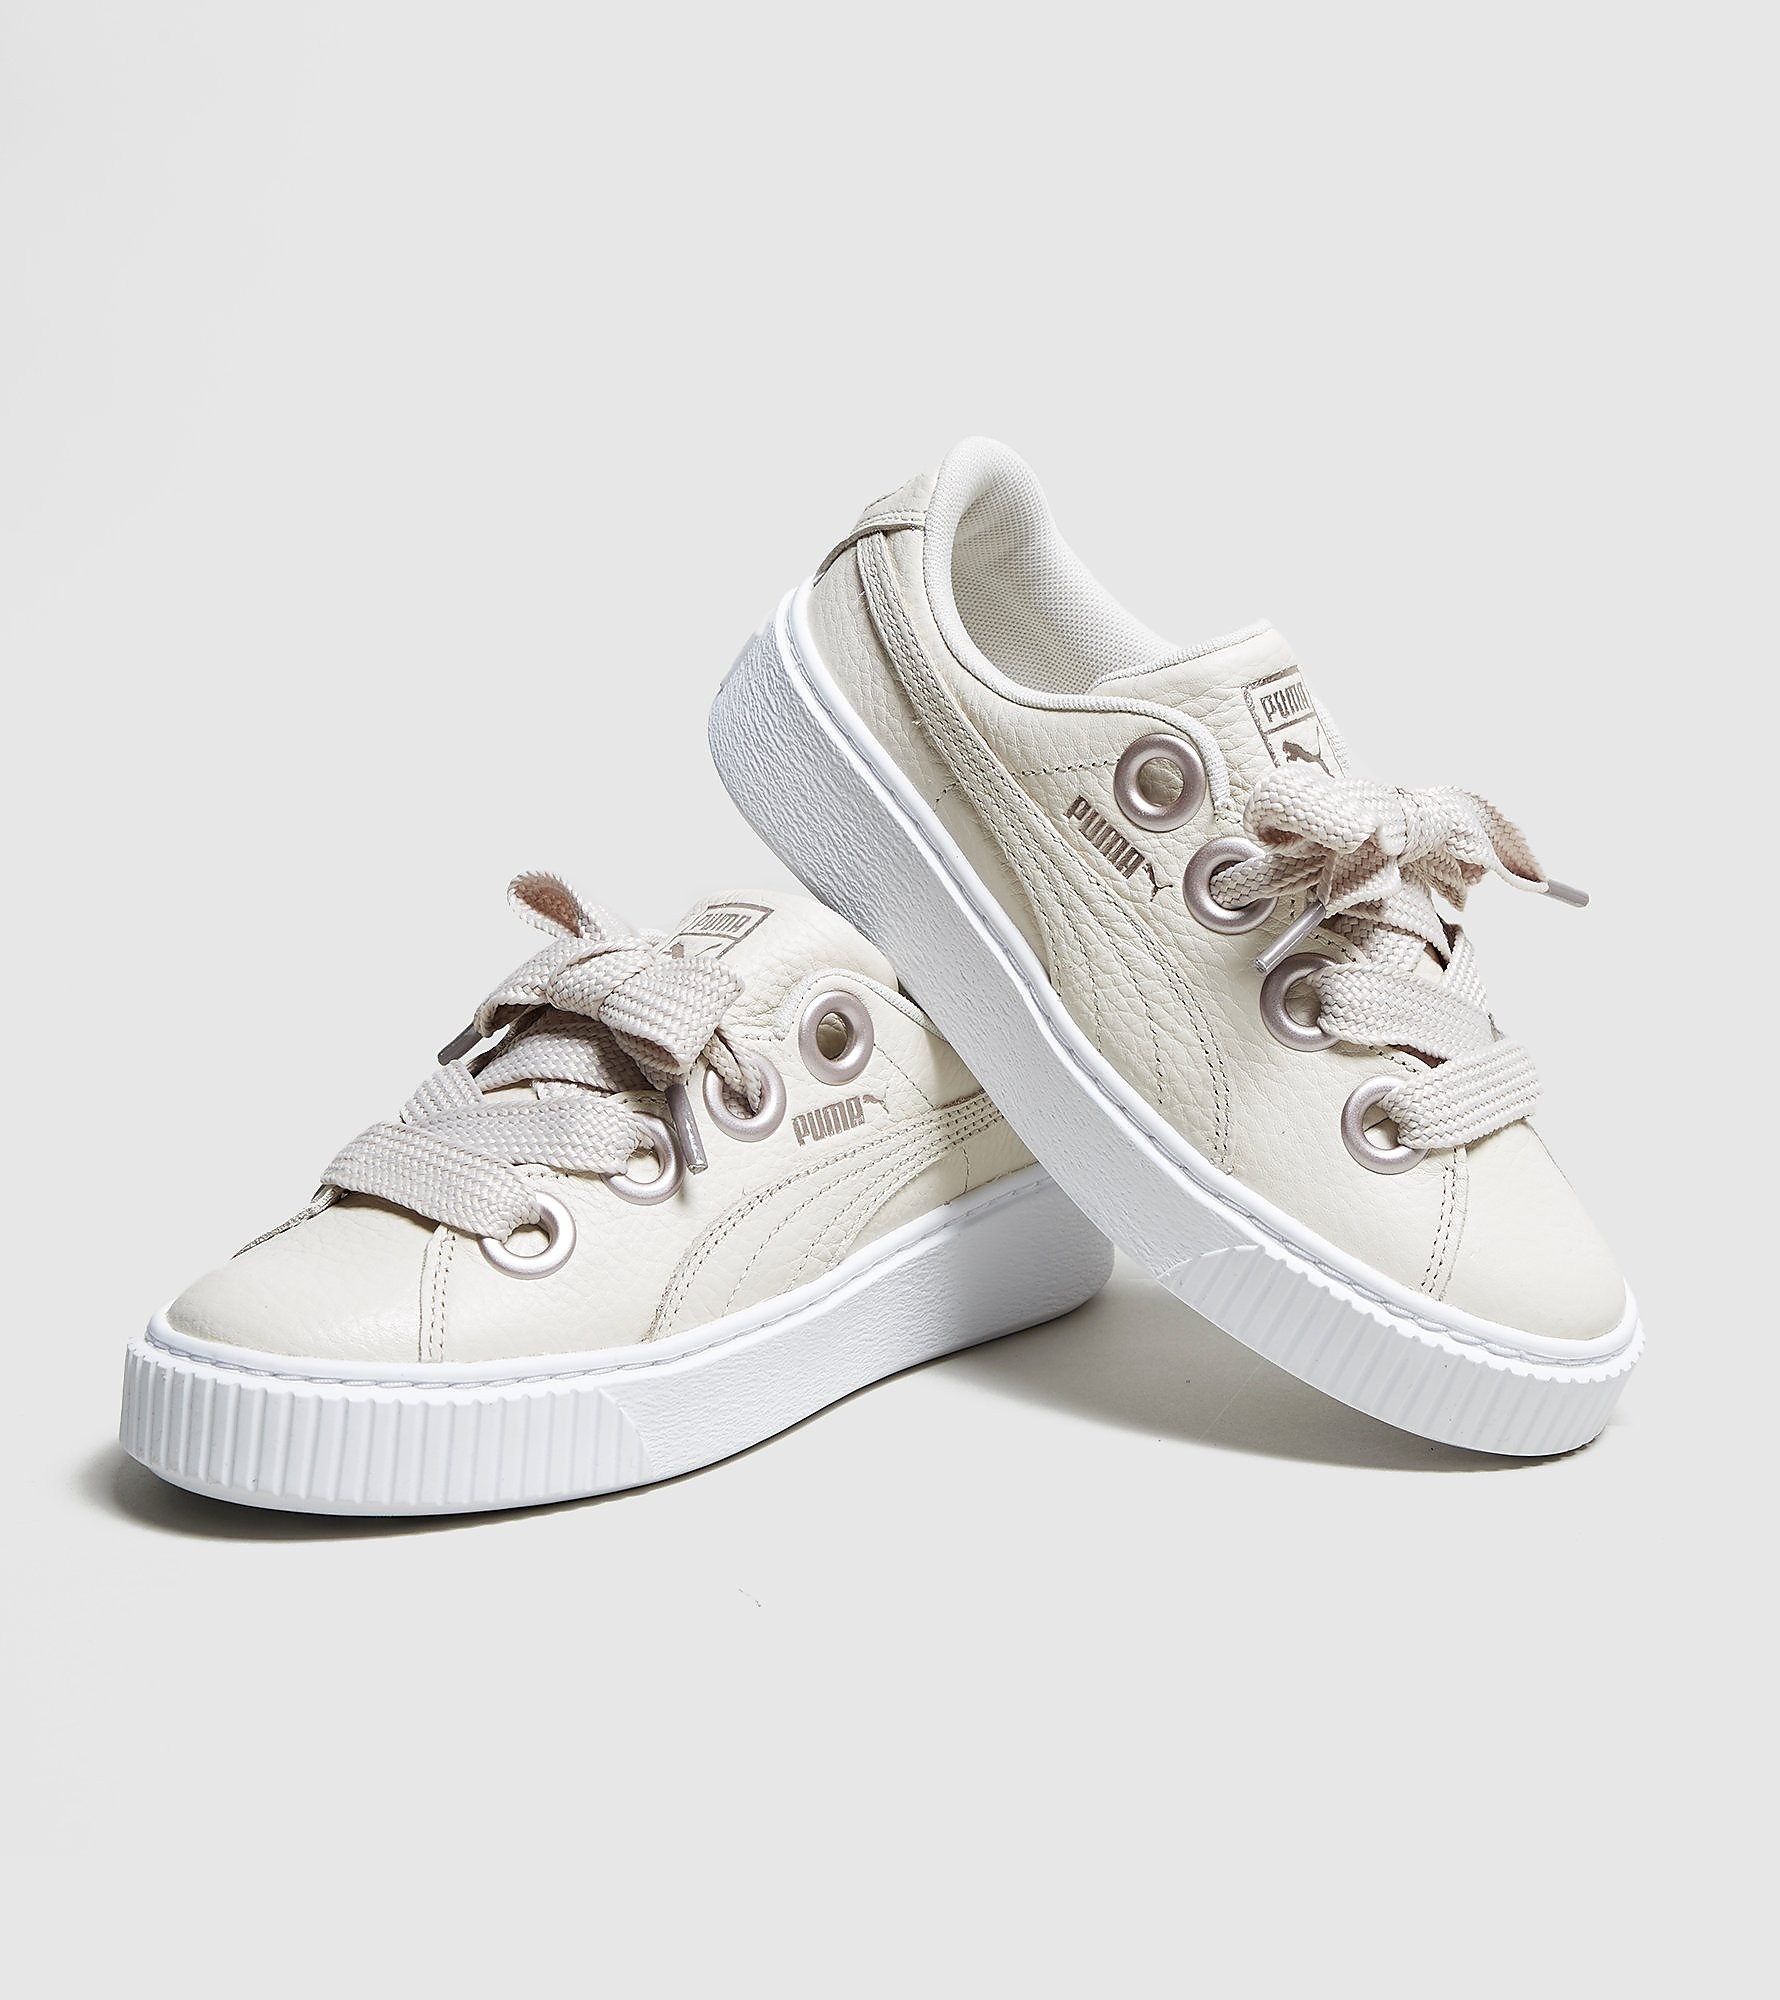 PUMA Basket Kiss Platform Women's